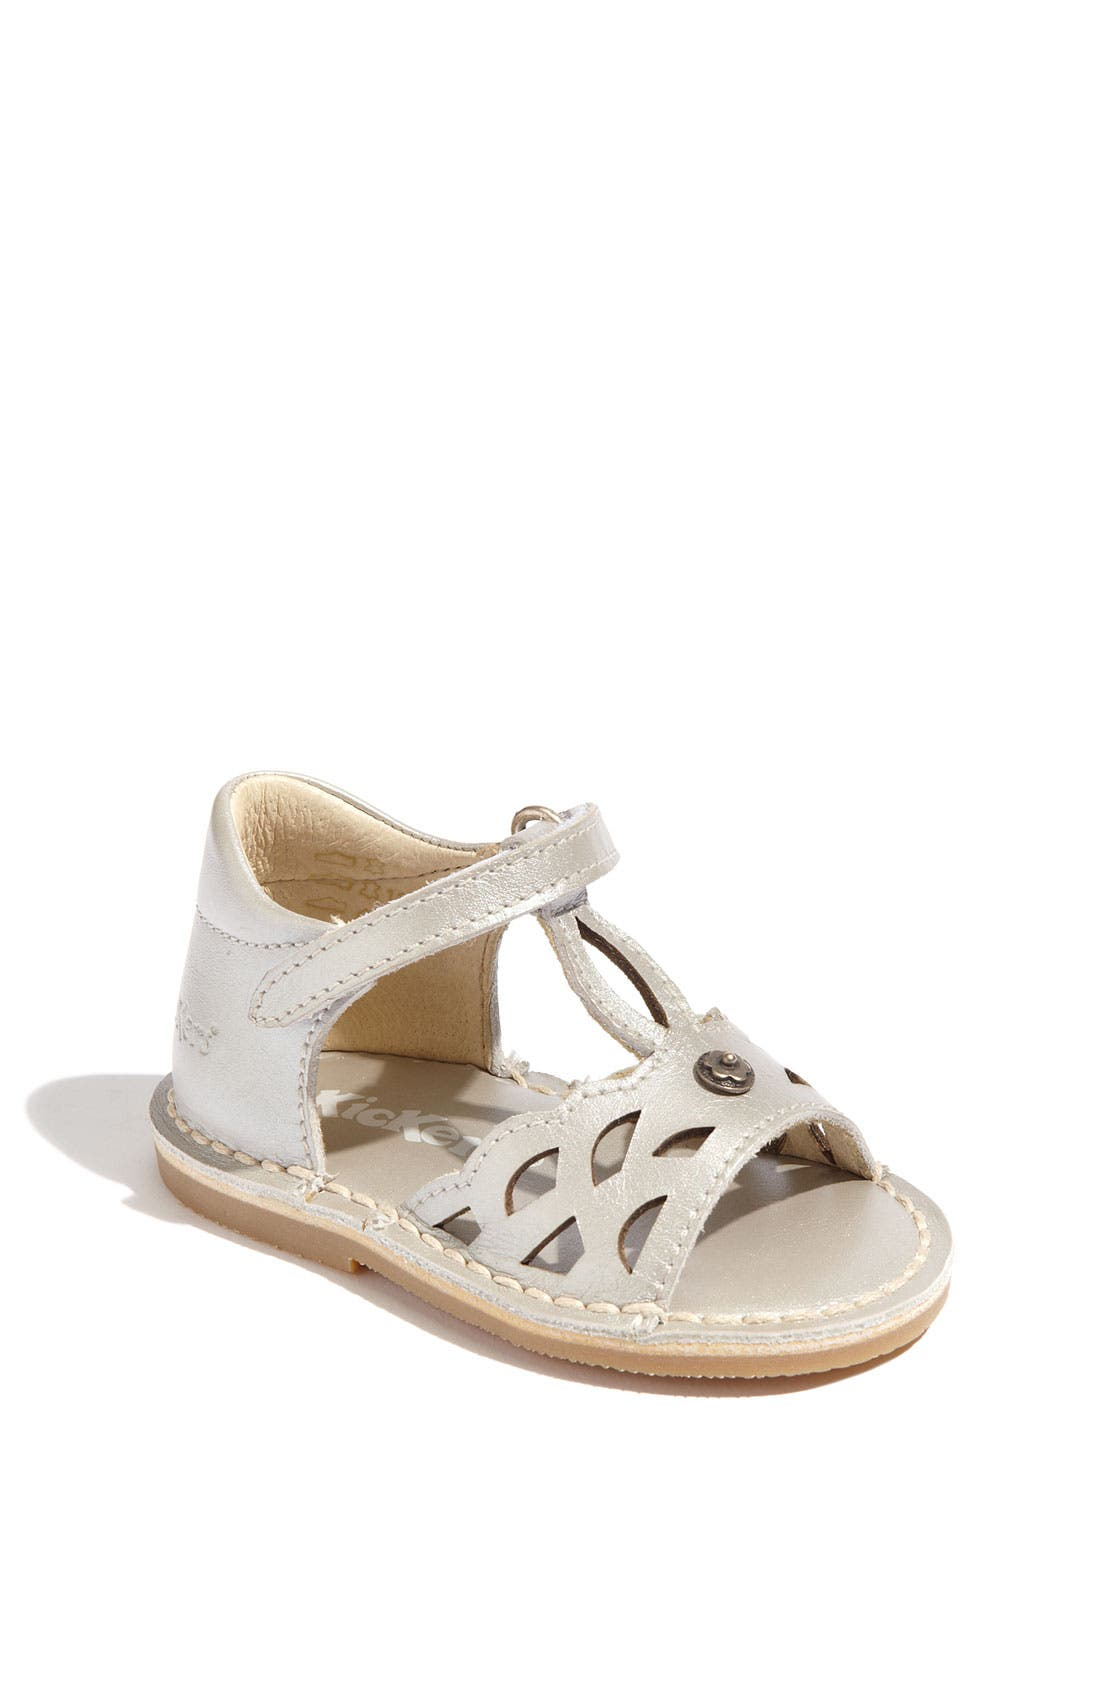 Main Image - Kickers 'Cocorico' Sandal (Baby, Walker & Toddler)